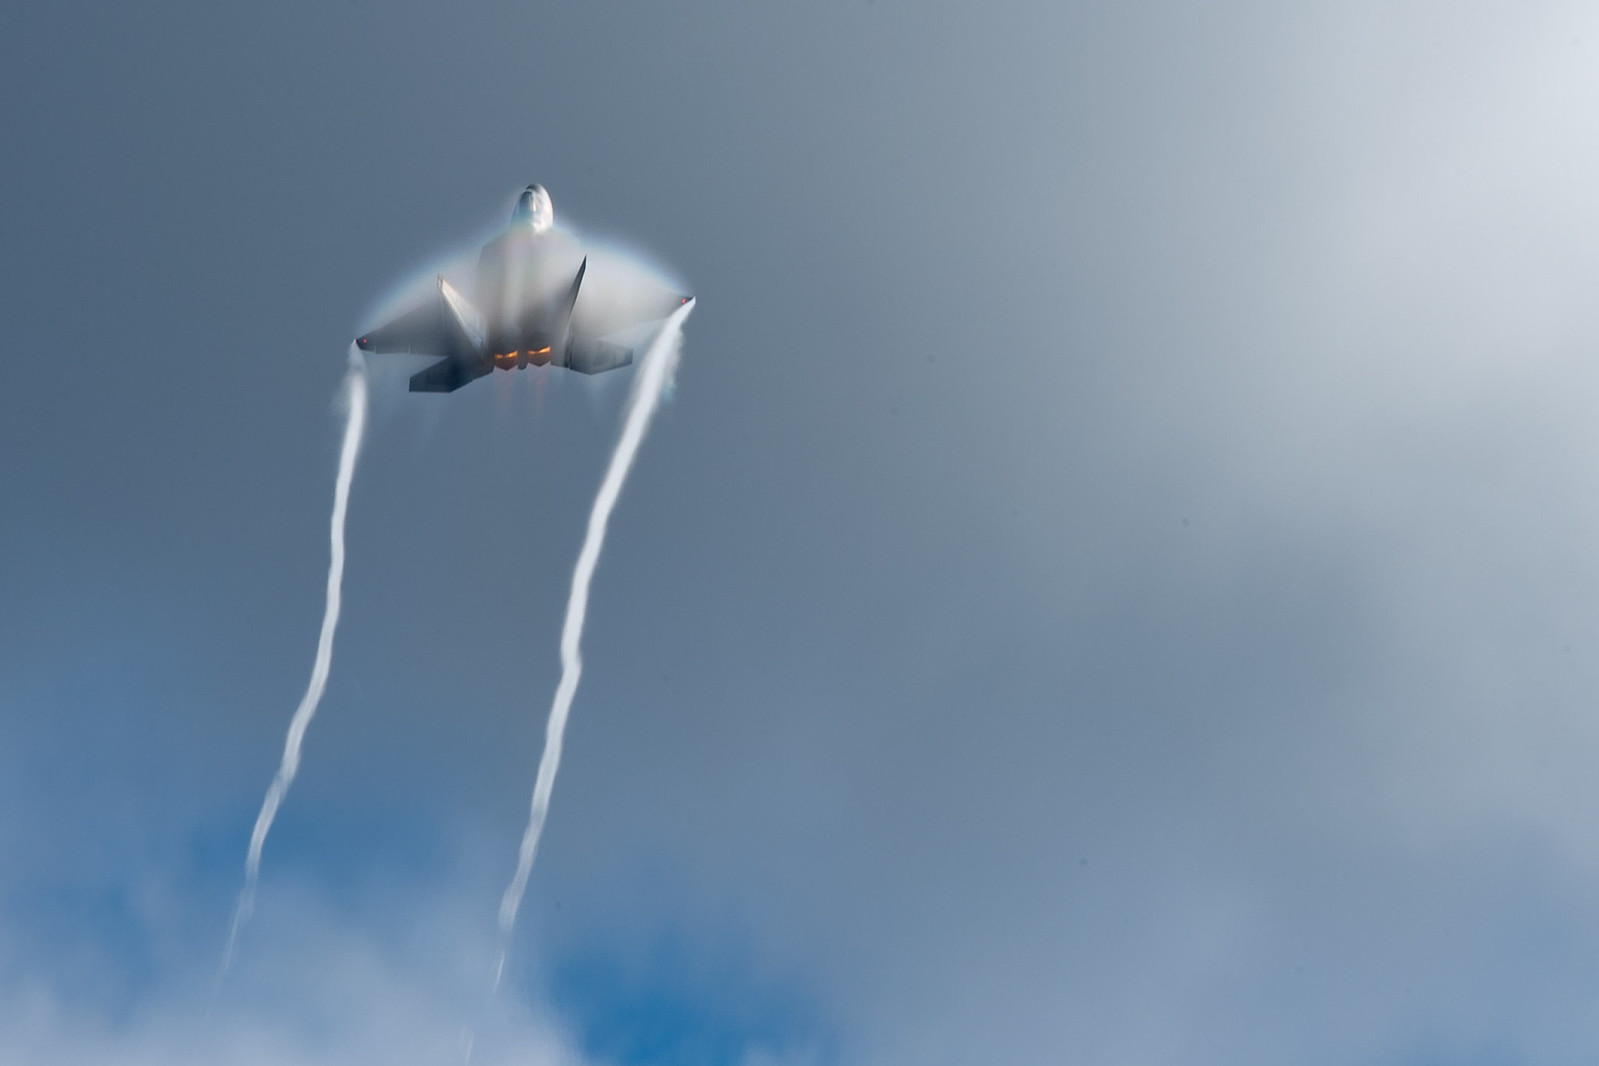 F-22 flys at Artctic Thunder